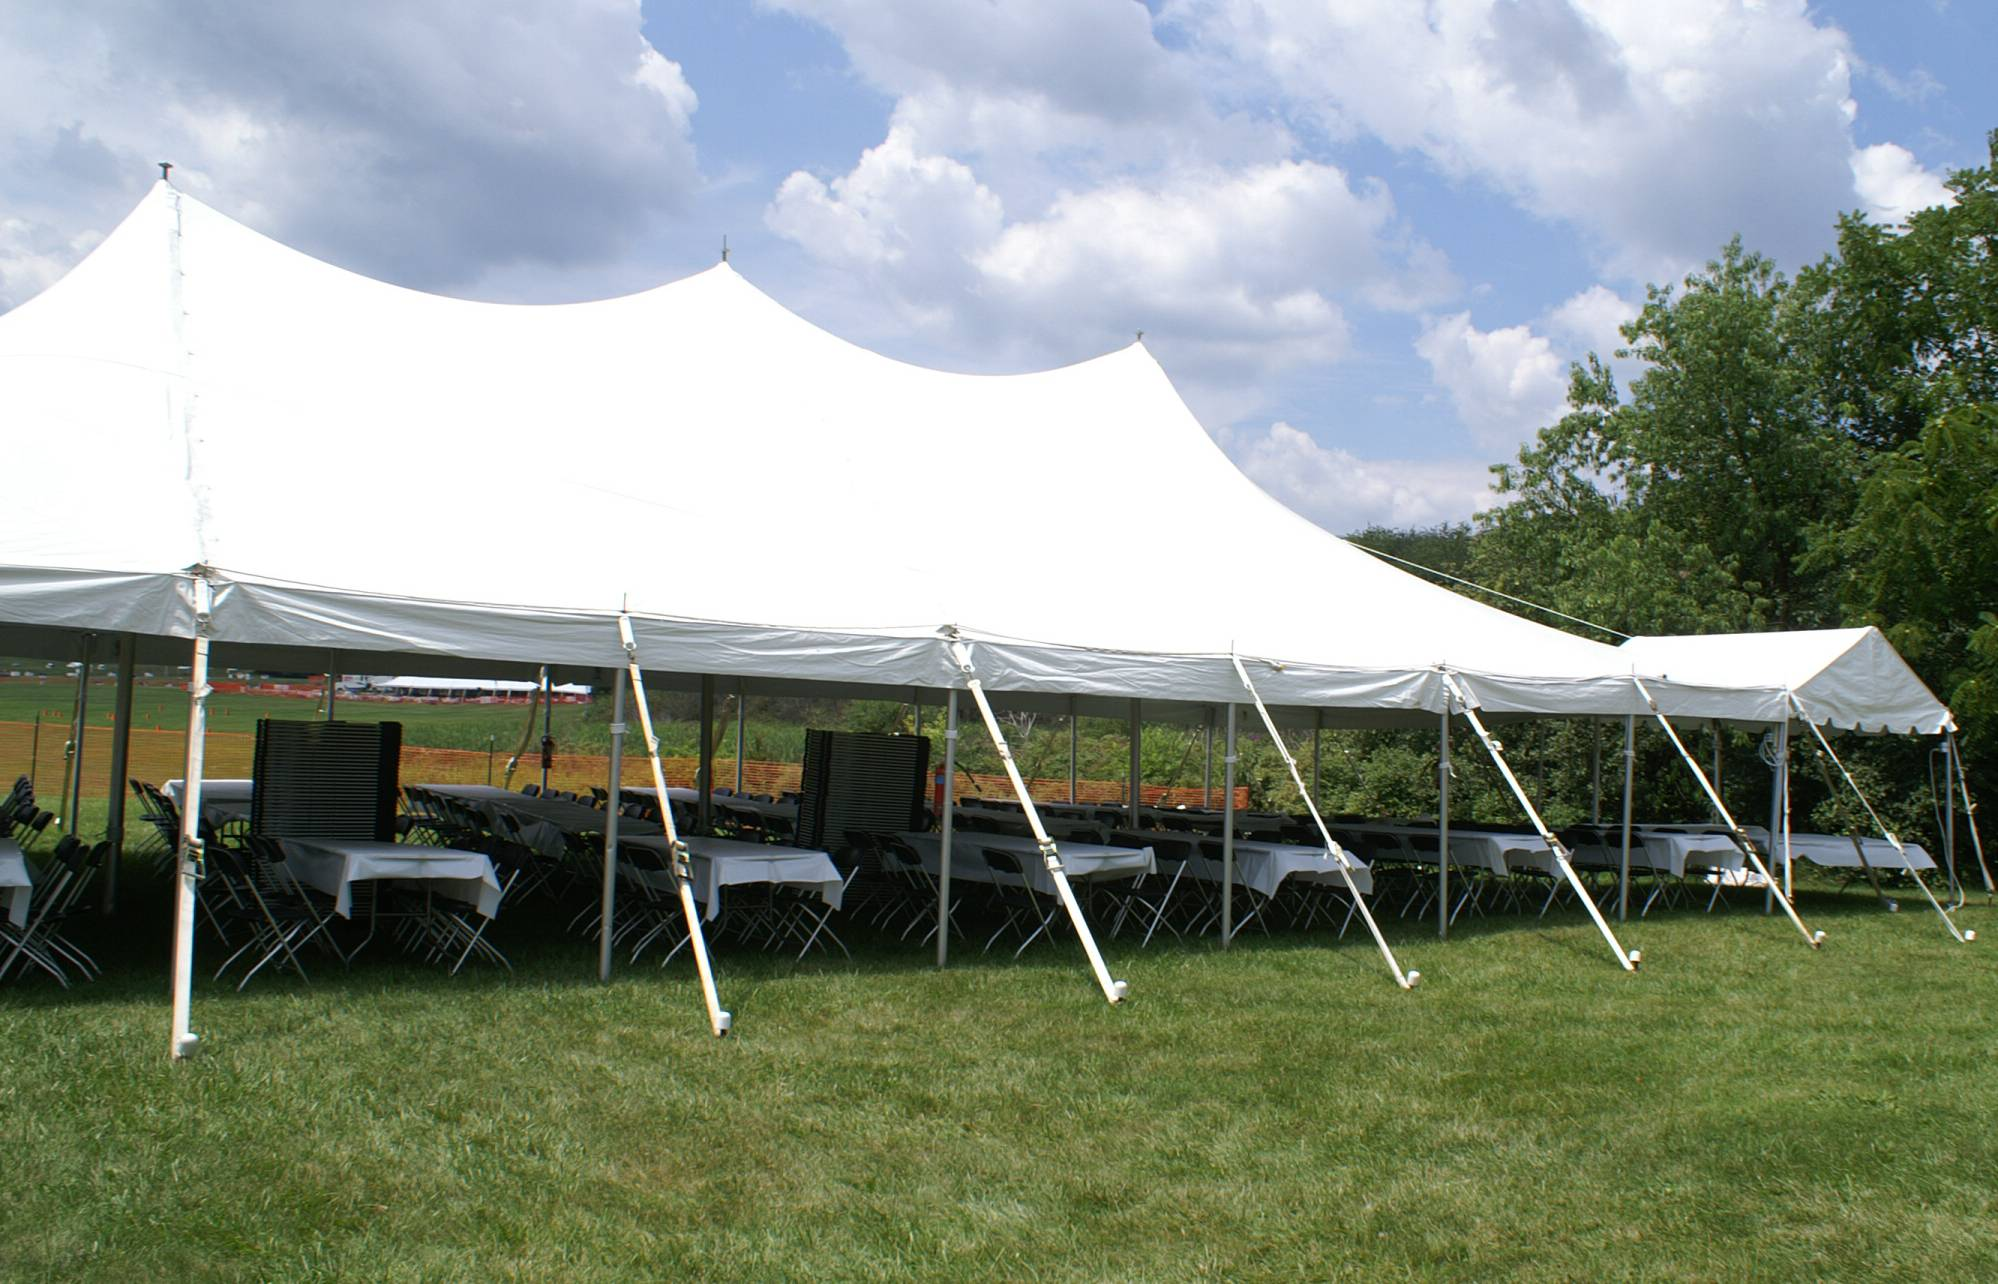 30' Wide Pole Tents